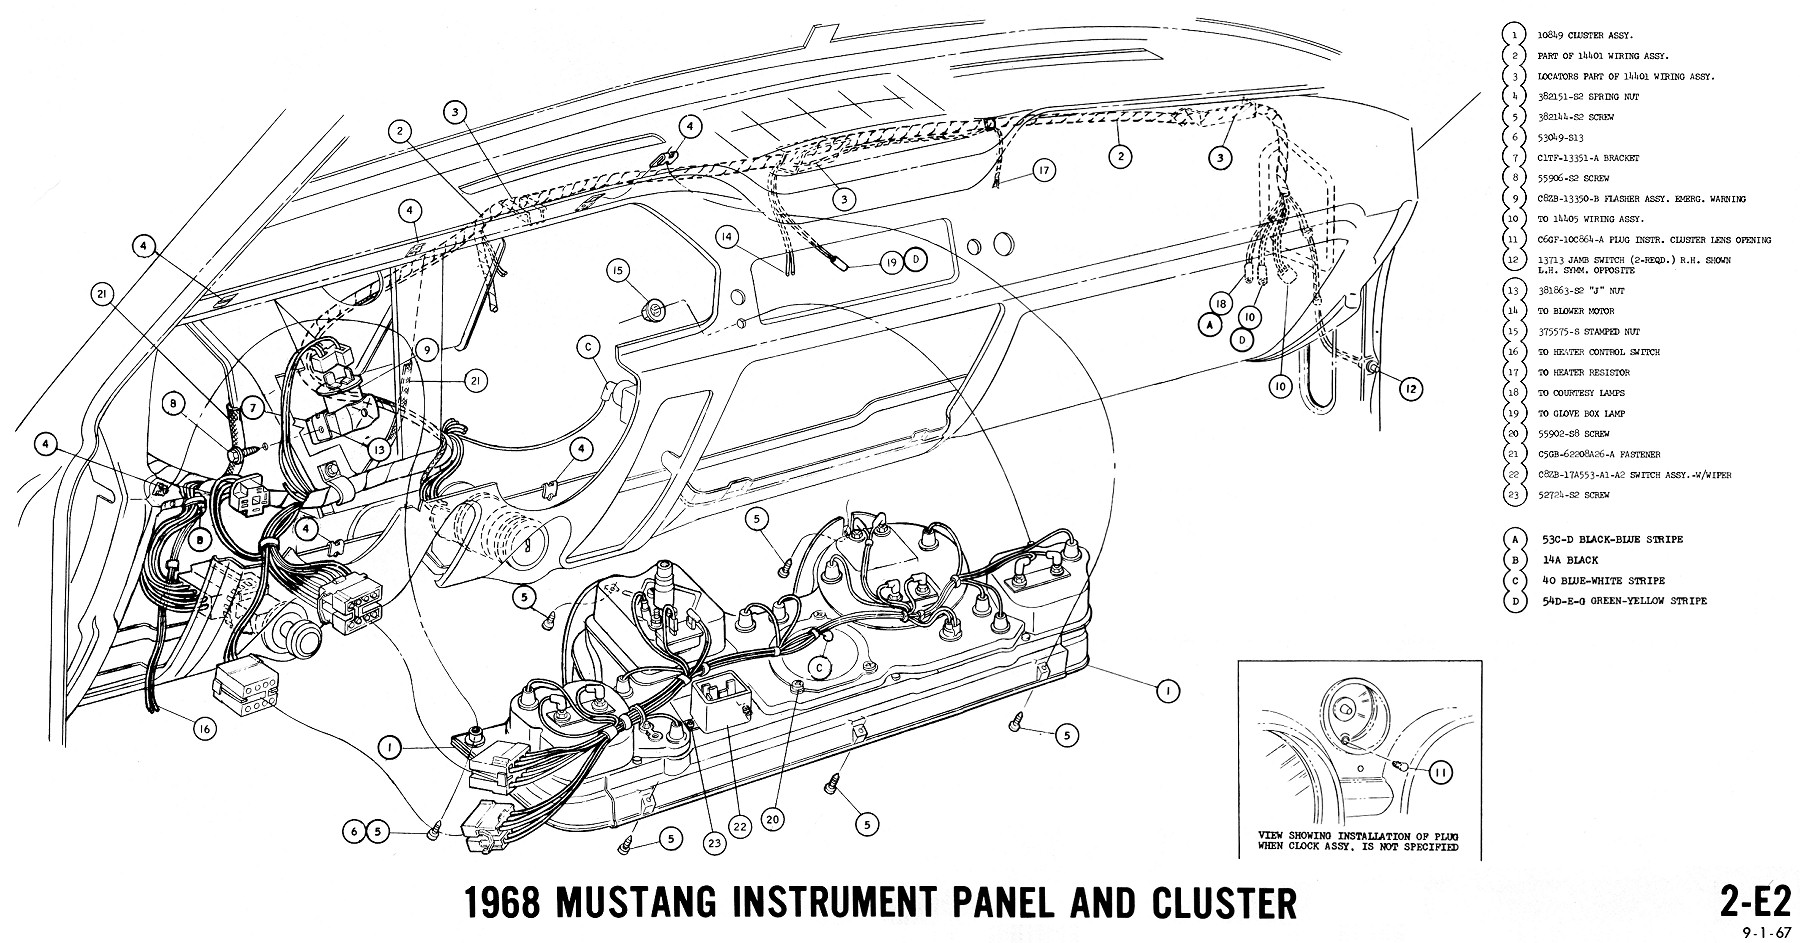 hight resolution of 1968 mustang wiring diagram wiring diagram1968 mustang wiring diagrams evolving softwareinstrument cluster e2 u2013